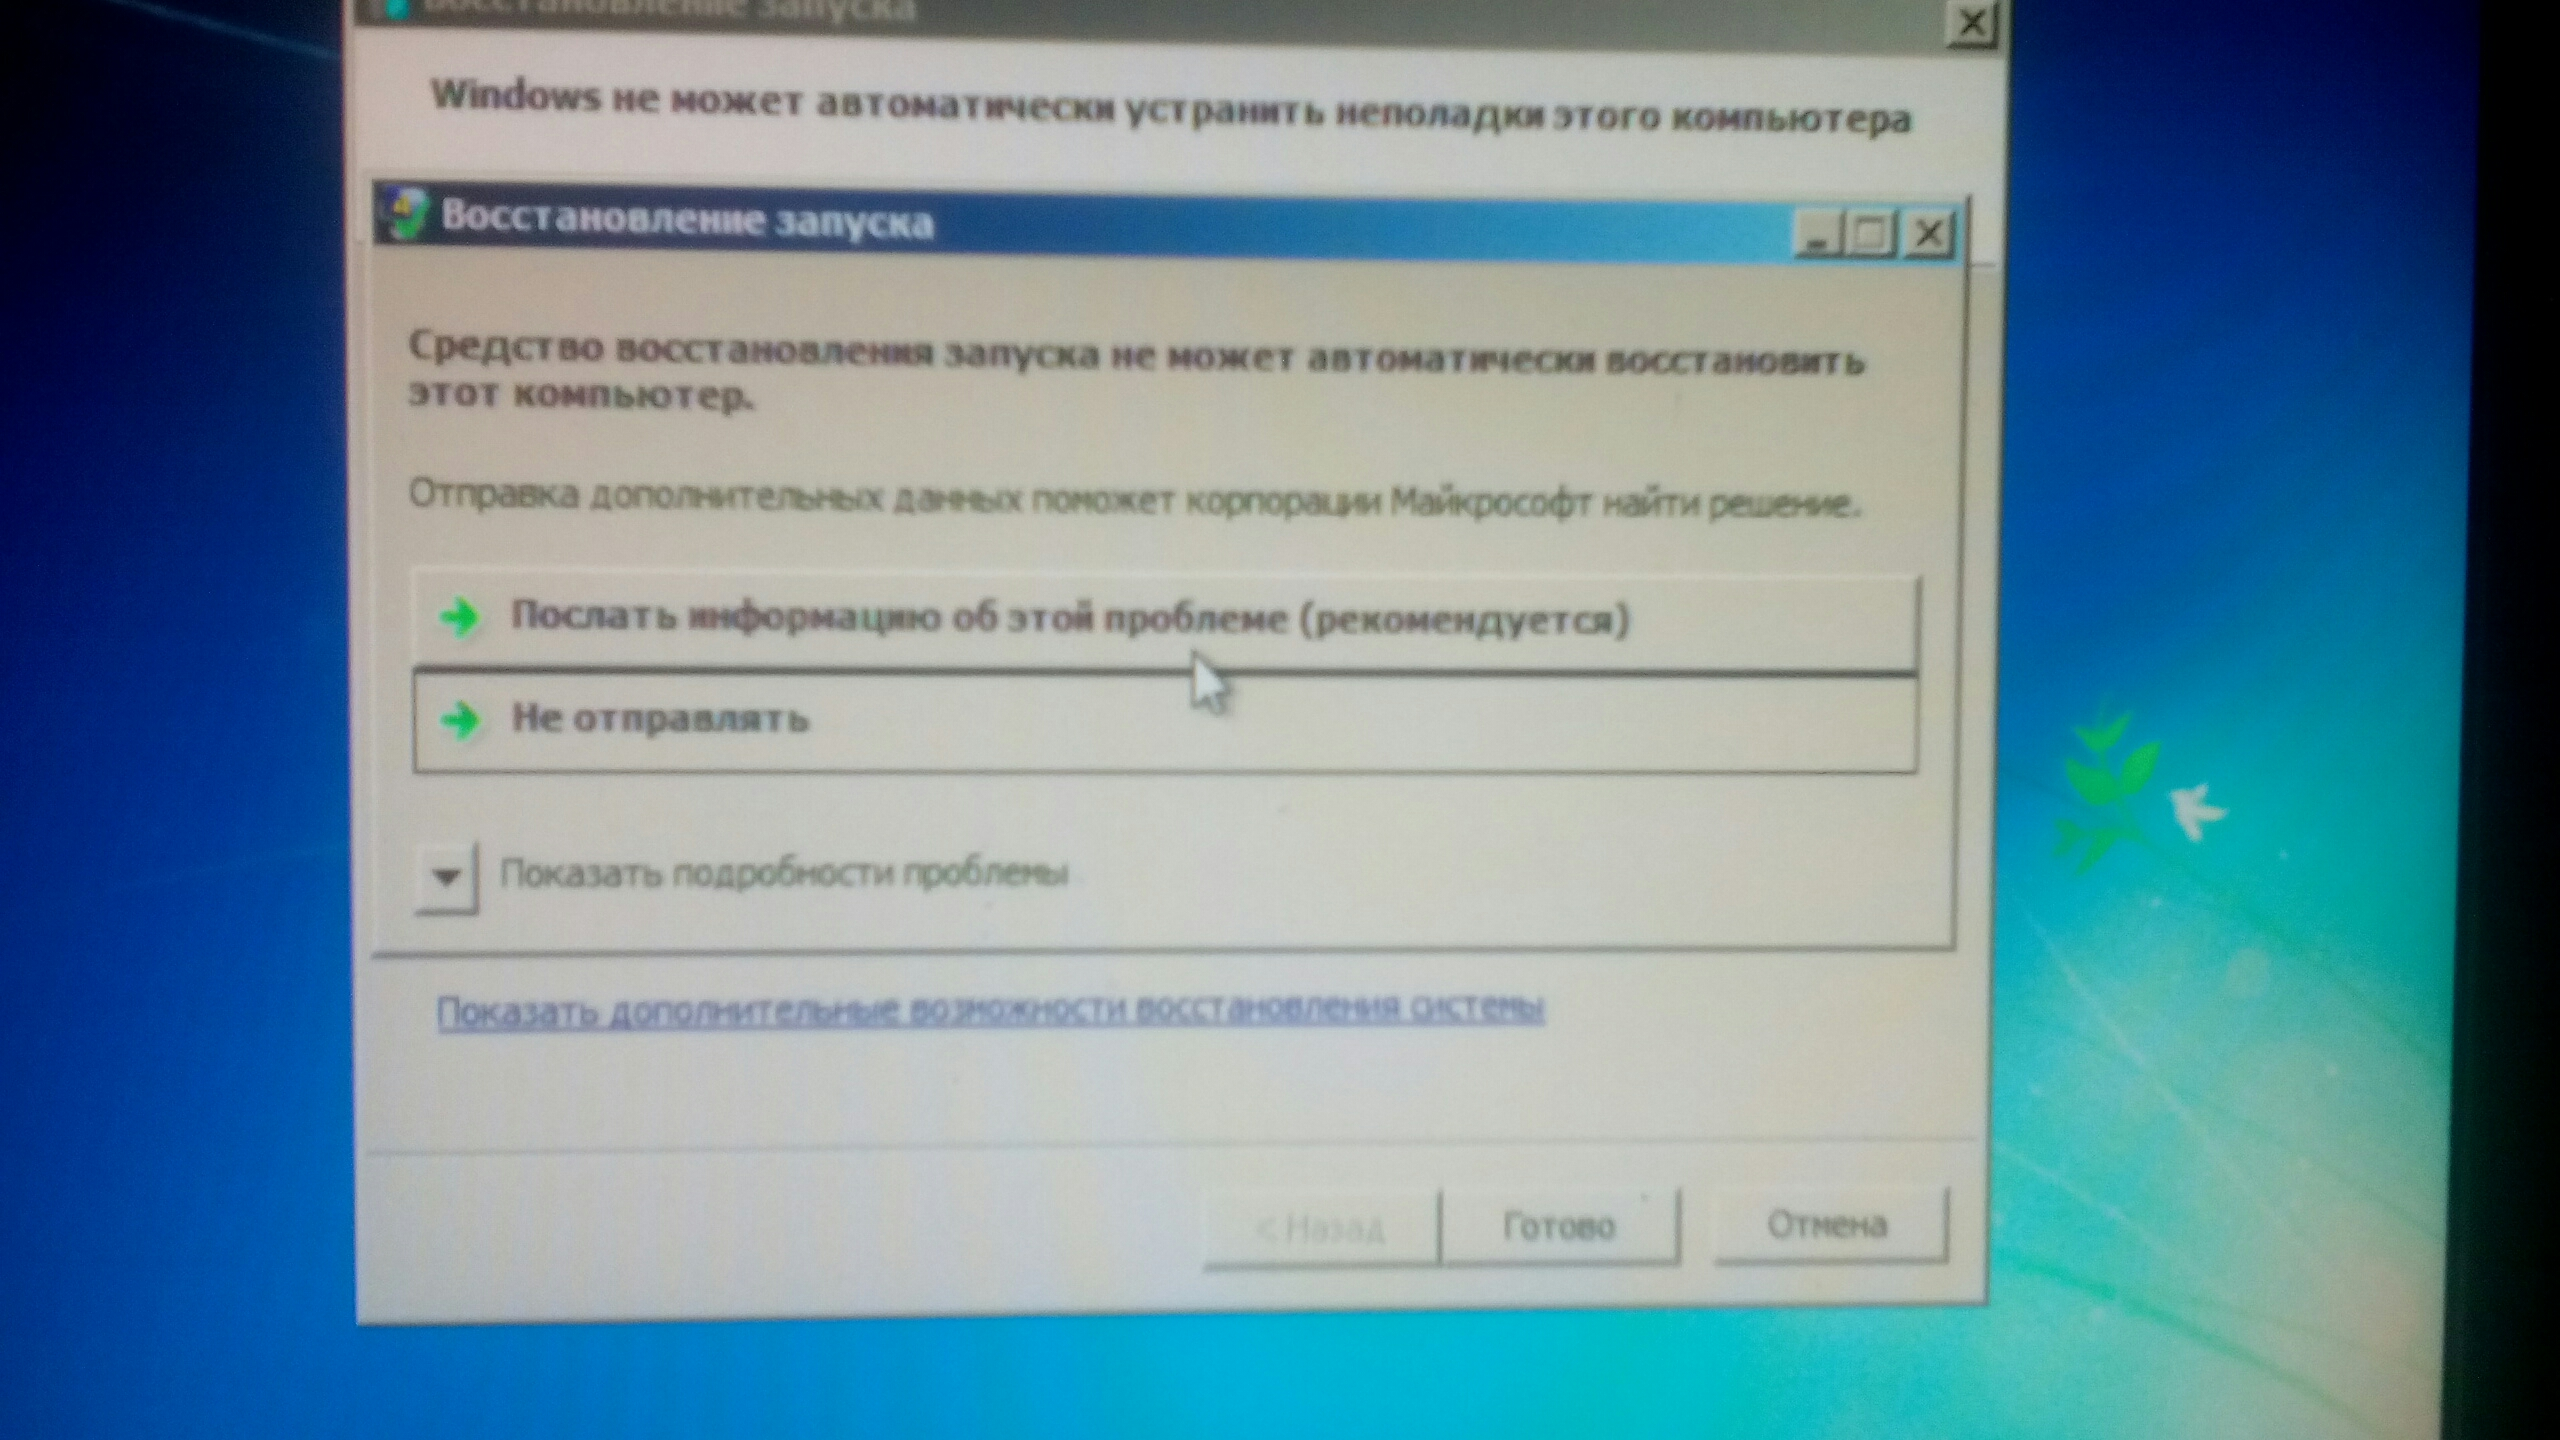 Как создать точку восстановления в Windows 7 83